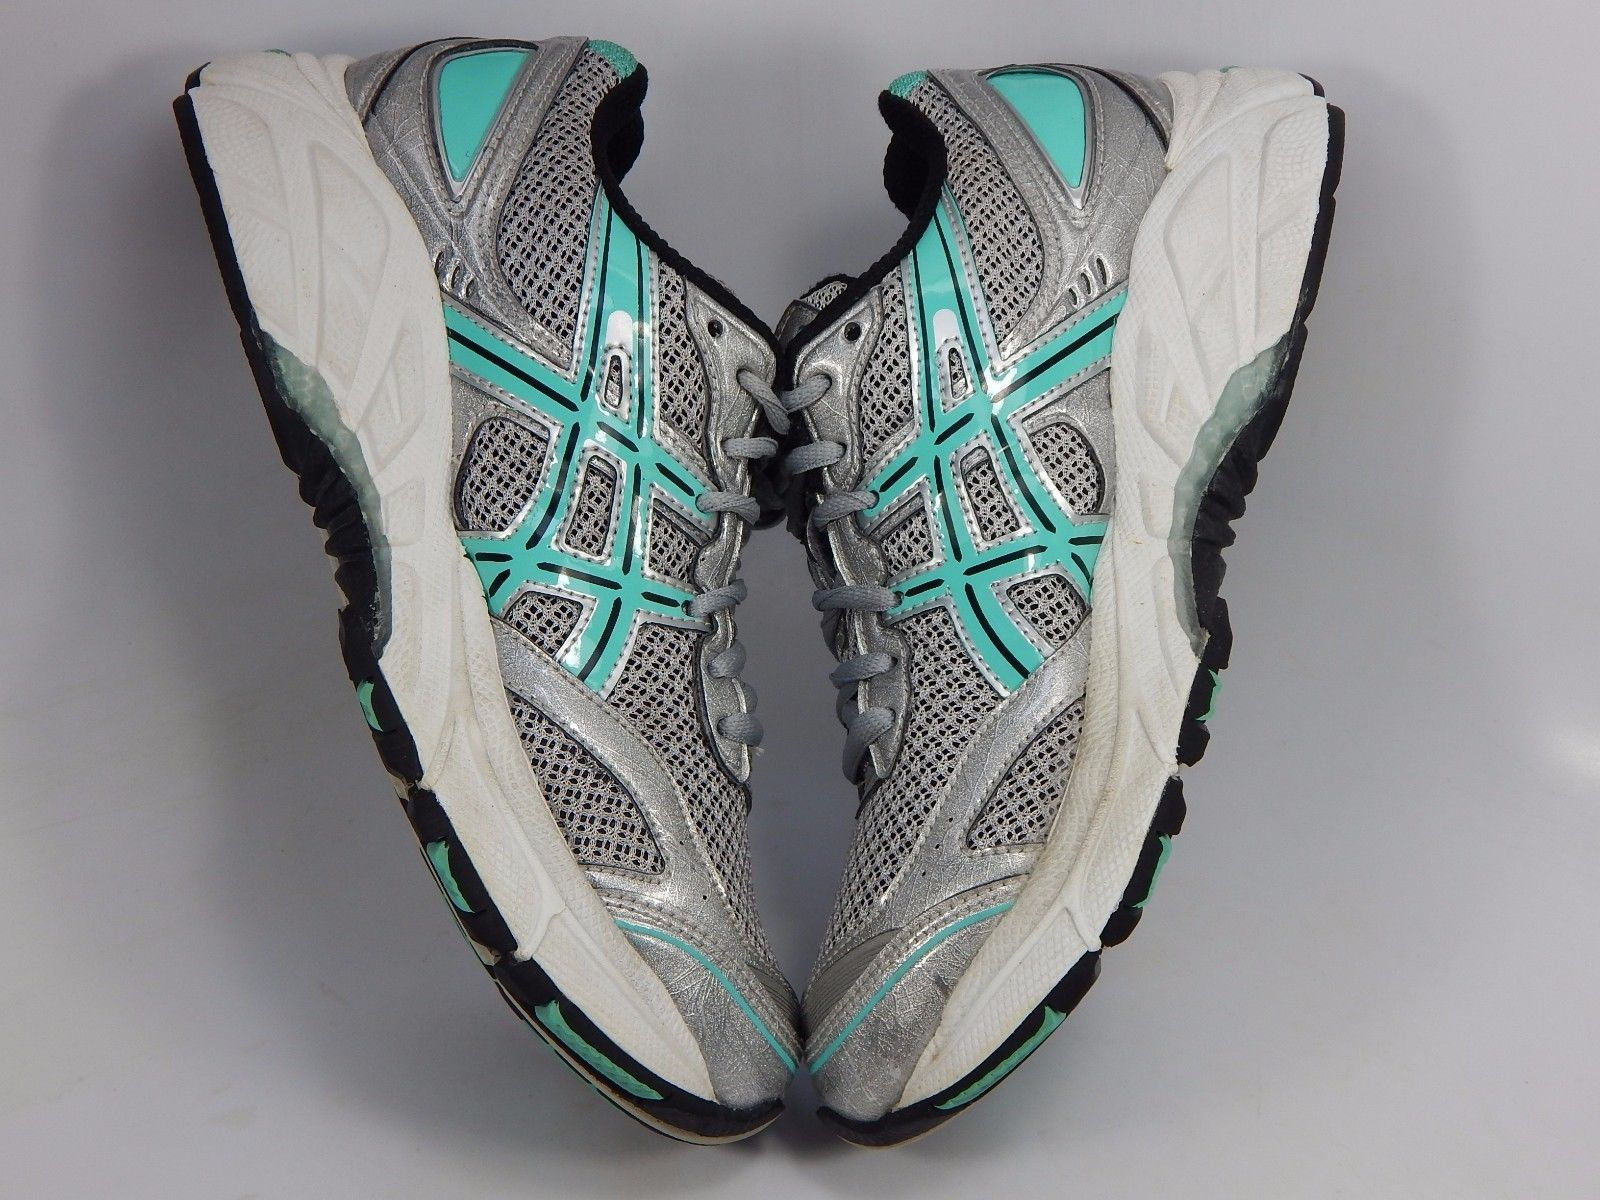 Asics Gel Fortitude 3 Women's Running Shoes Size US 6.5 M (B) EU 37.5 TQ8B7